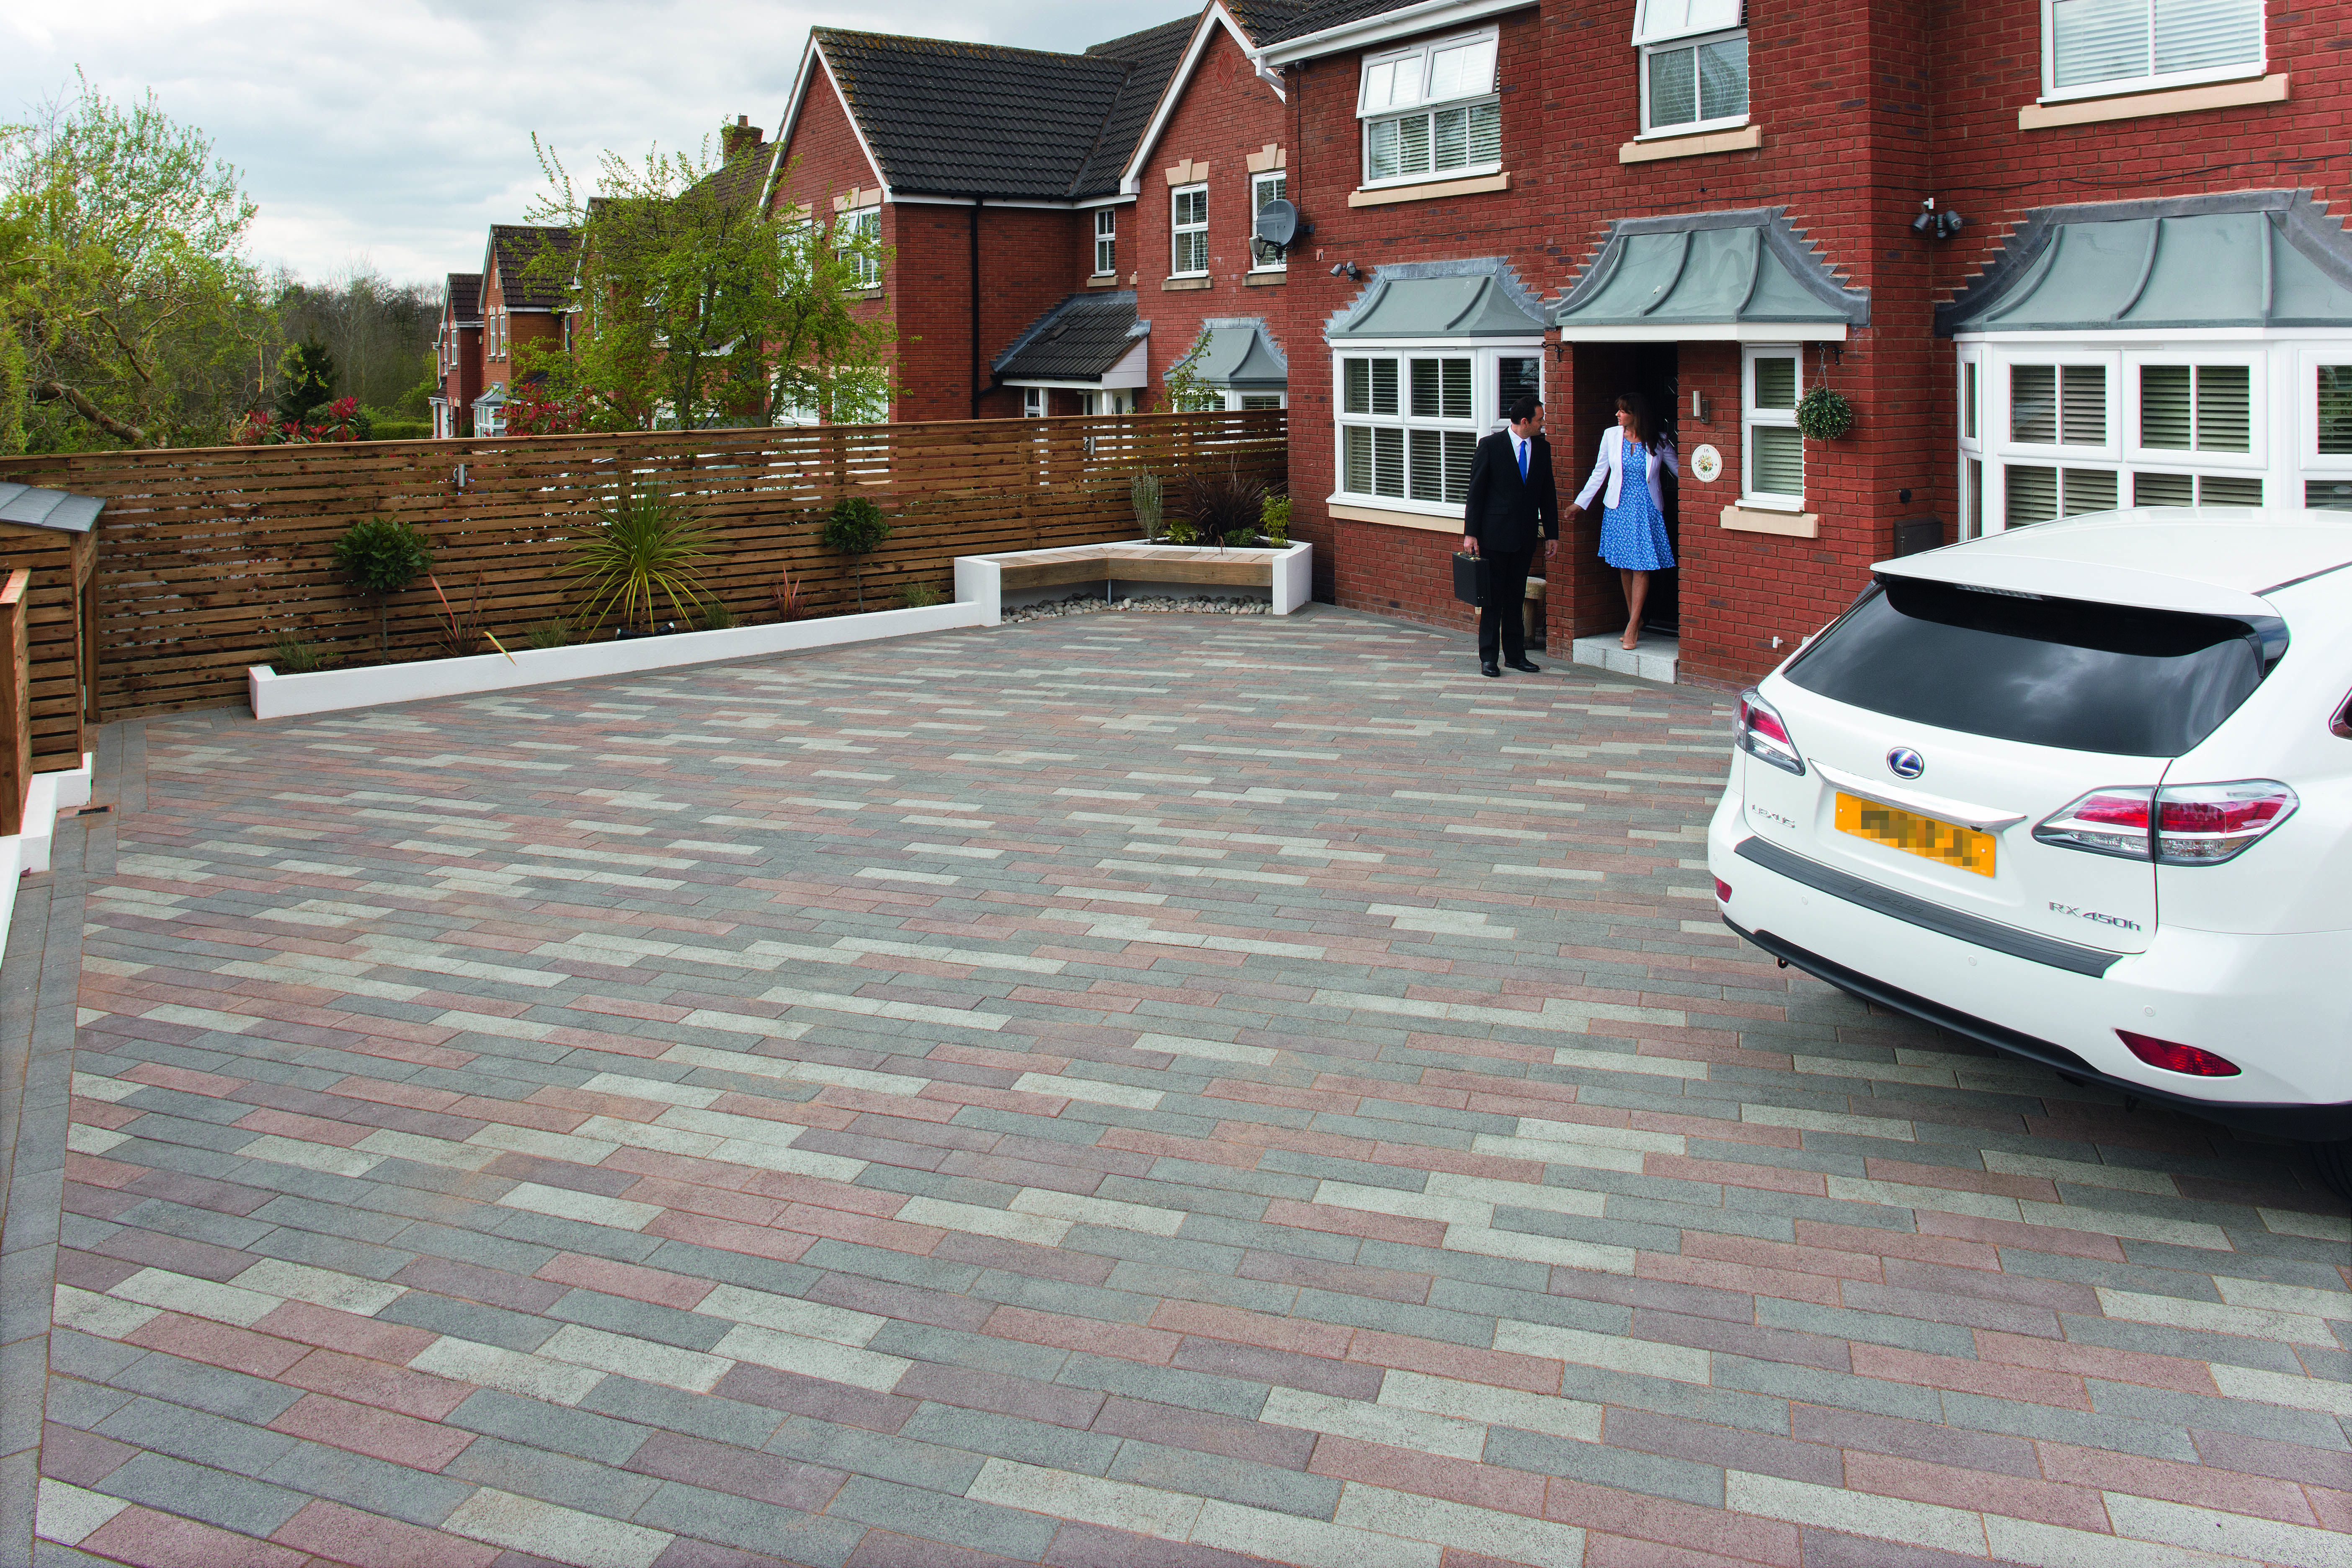 Create A Feature Of Your Driveway By Mixing Different Colour Blocks Of The Same Range Image Is Driveline Metr Driveway Design Driveway Paving House Exterior